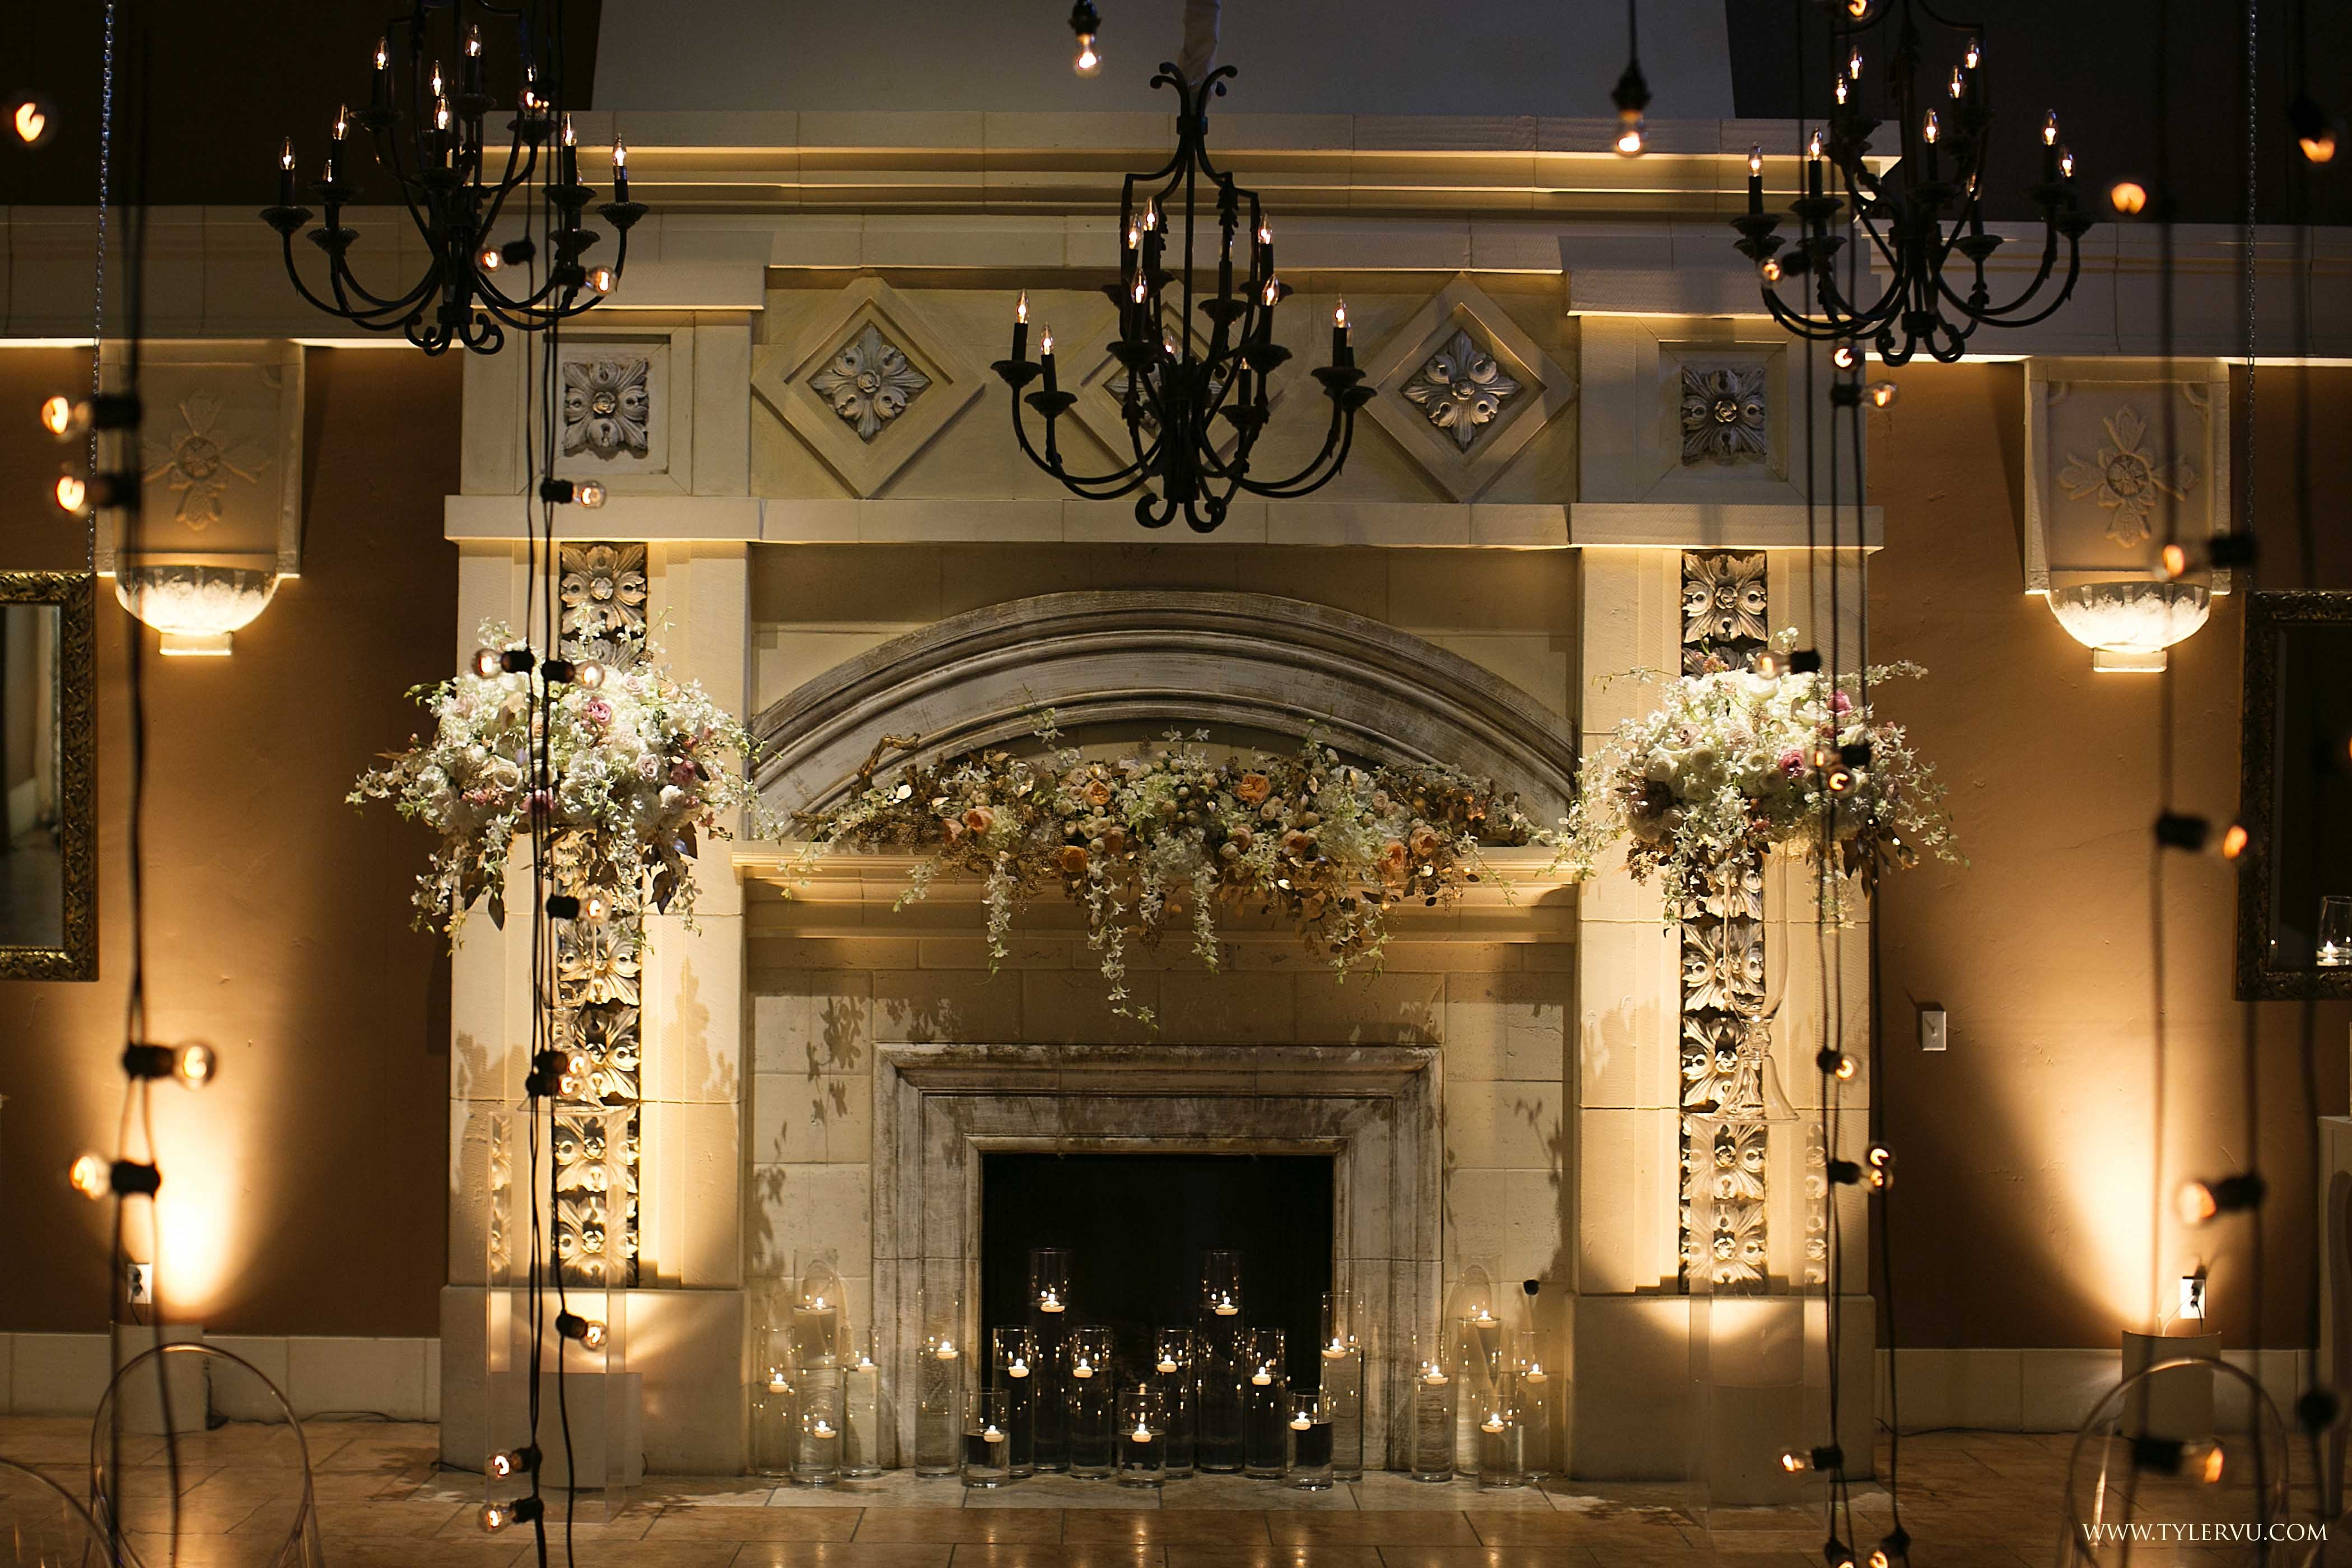 Introducing Our Antique Chandeliers Fantasy Sound Event Services Pertaining To Antique Chandeliers (Image 14 of 15)